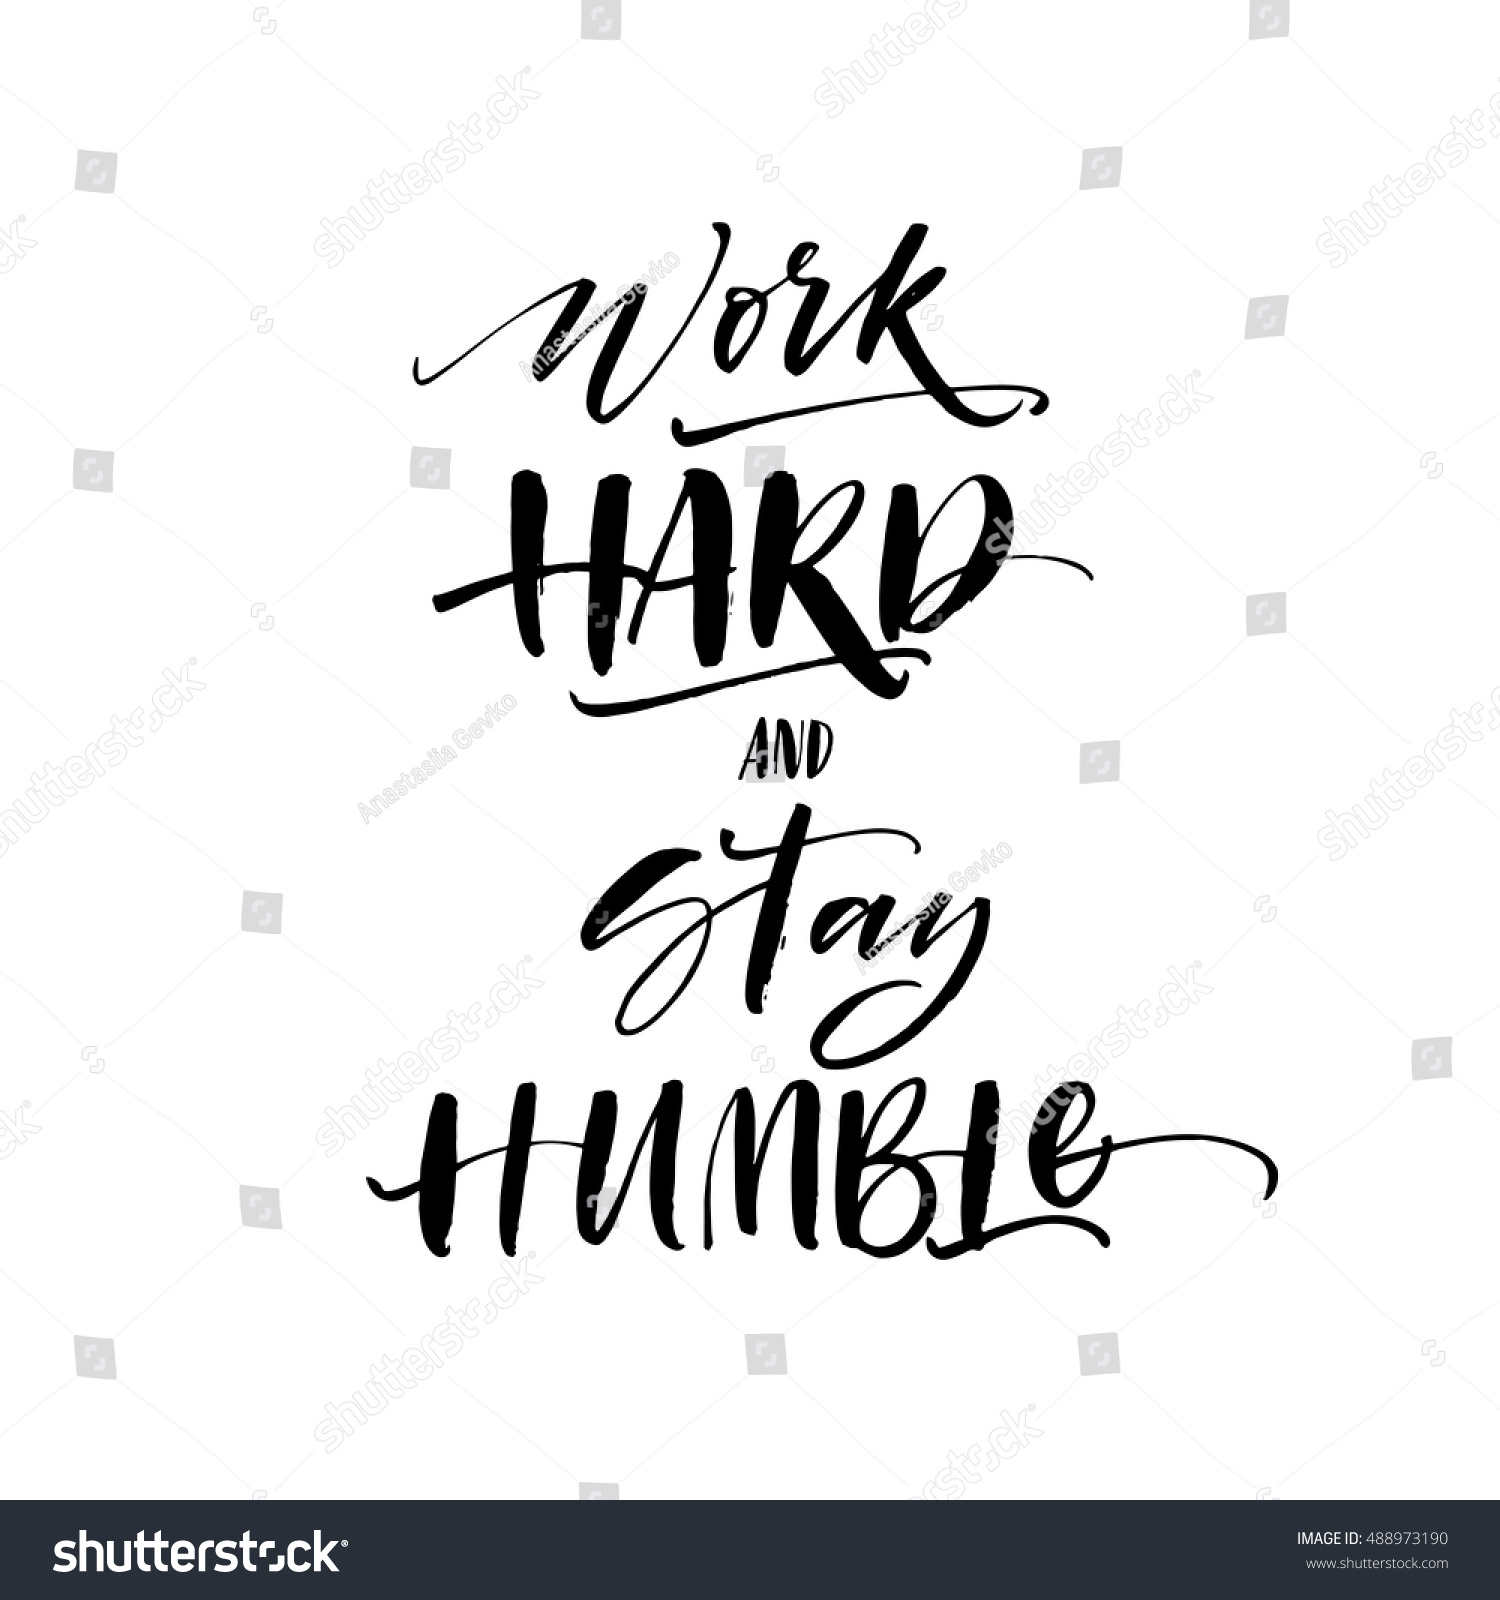 Work hard and stay humble postcard hand drawn lettering